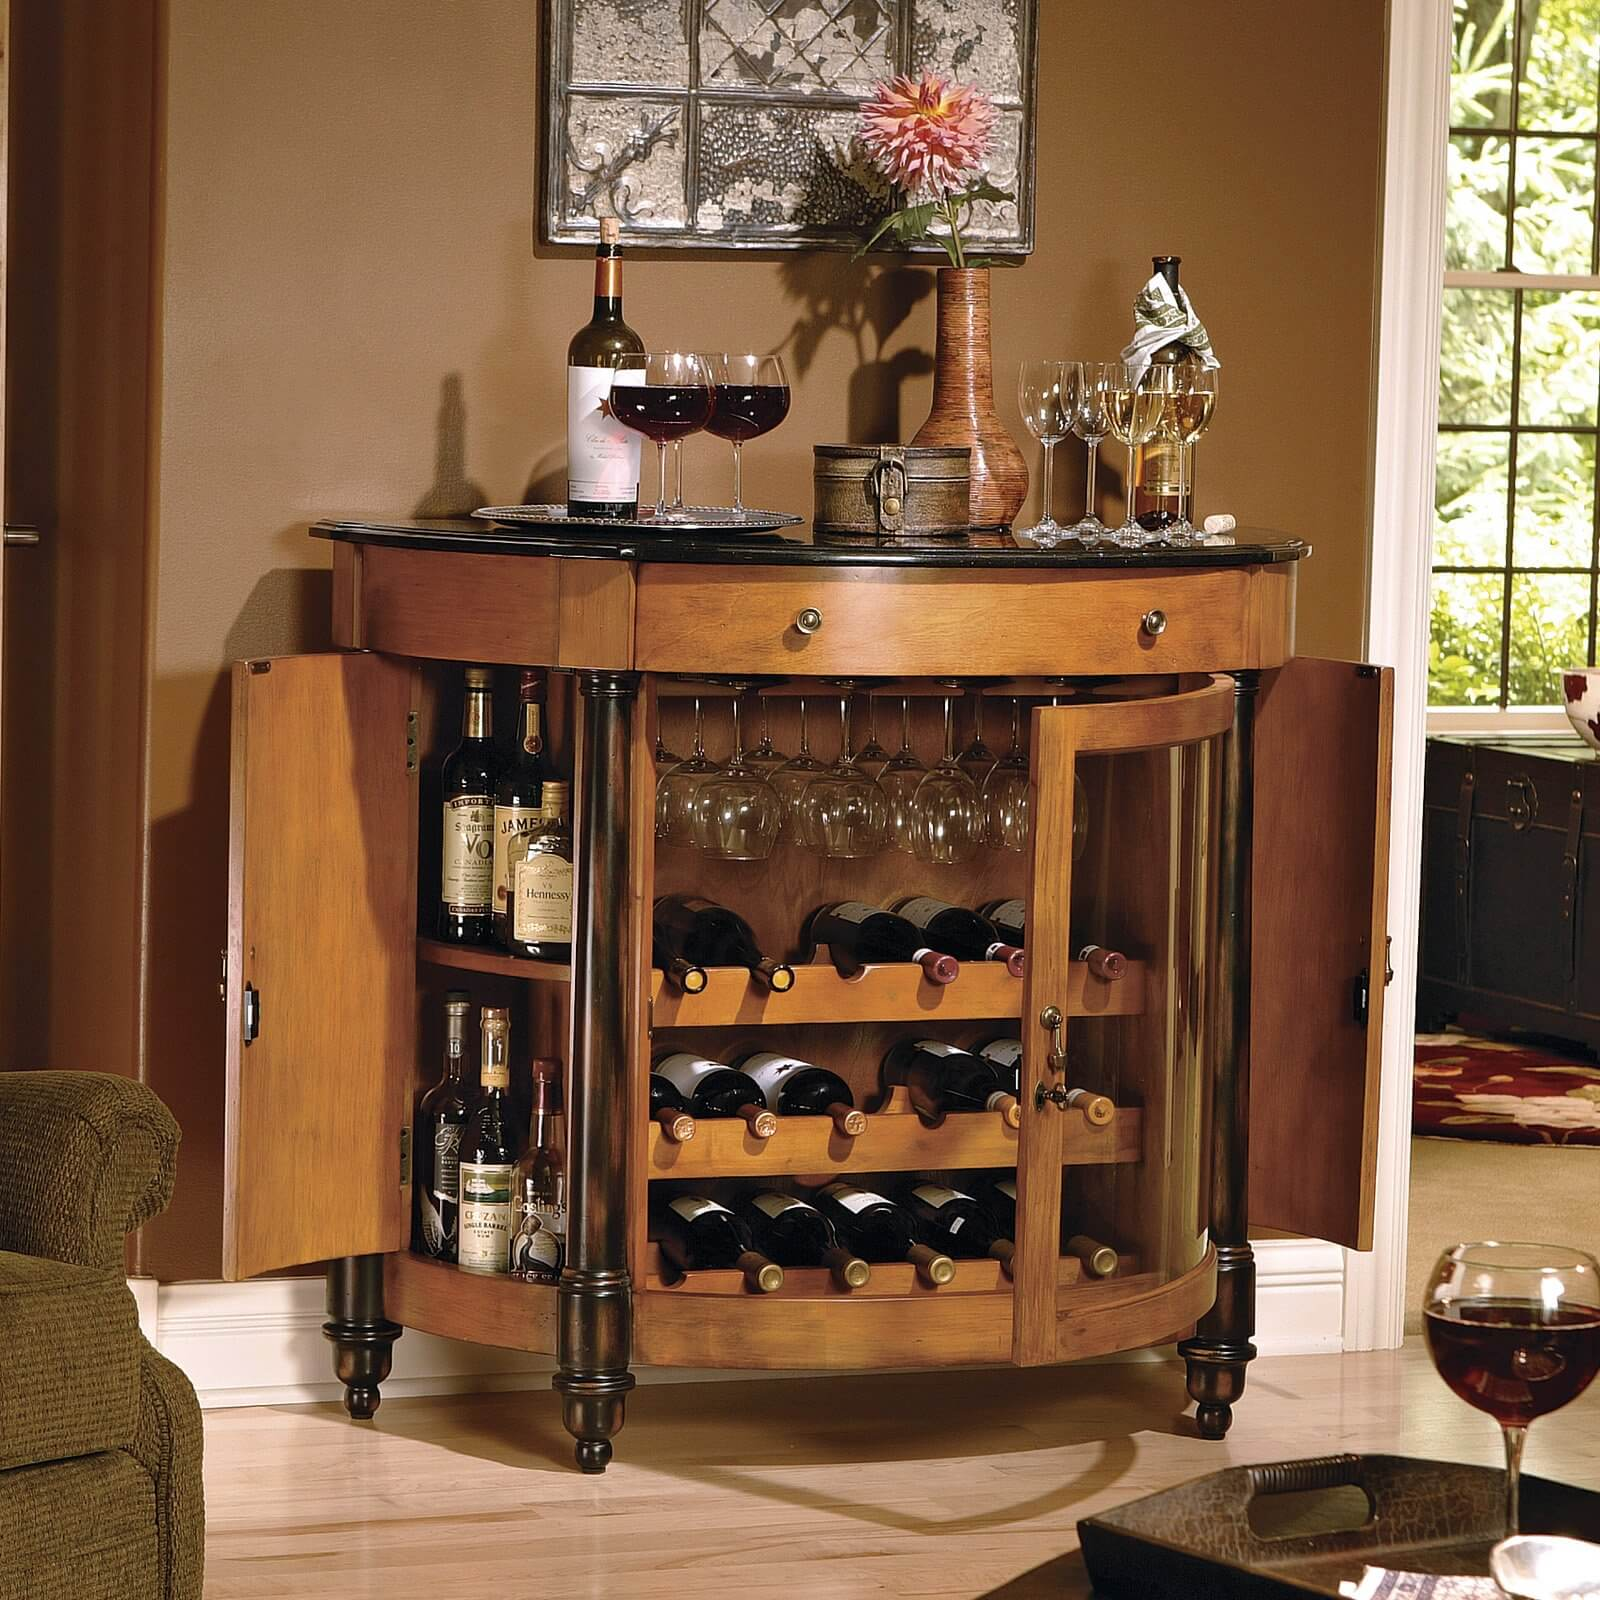 Hereu0027s A Home Bar For Wine Lovers With Itu0027s 18 Bottle Wine ...